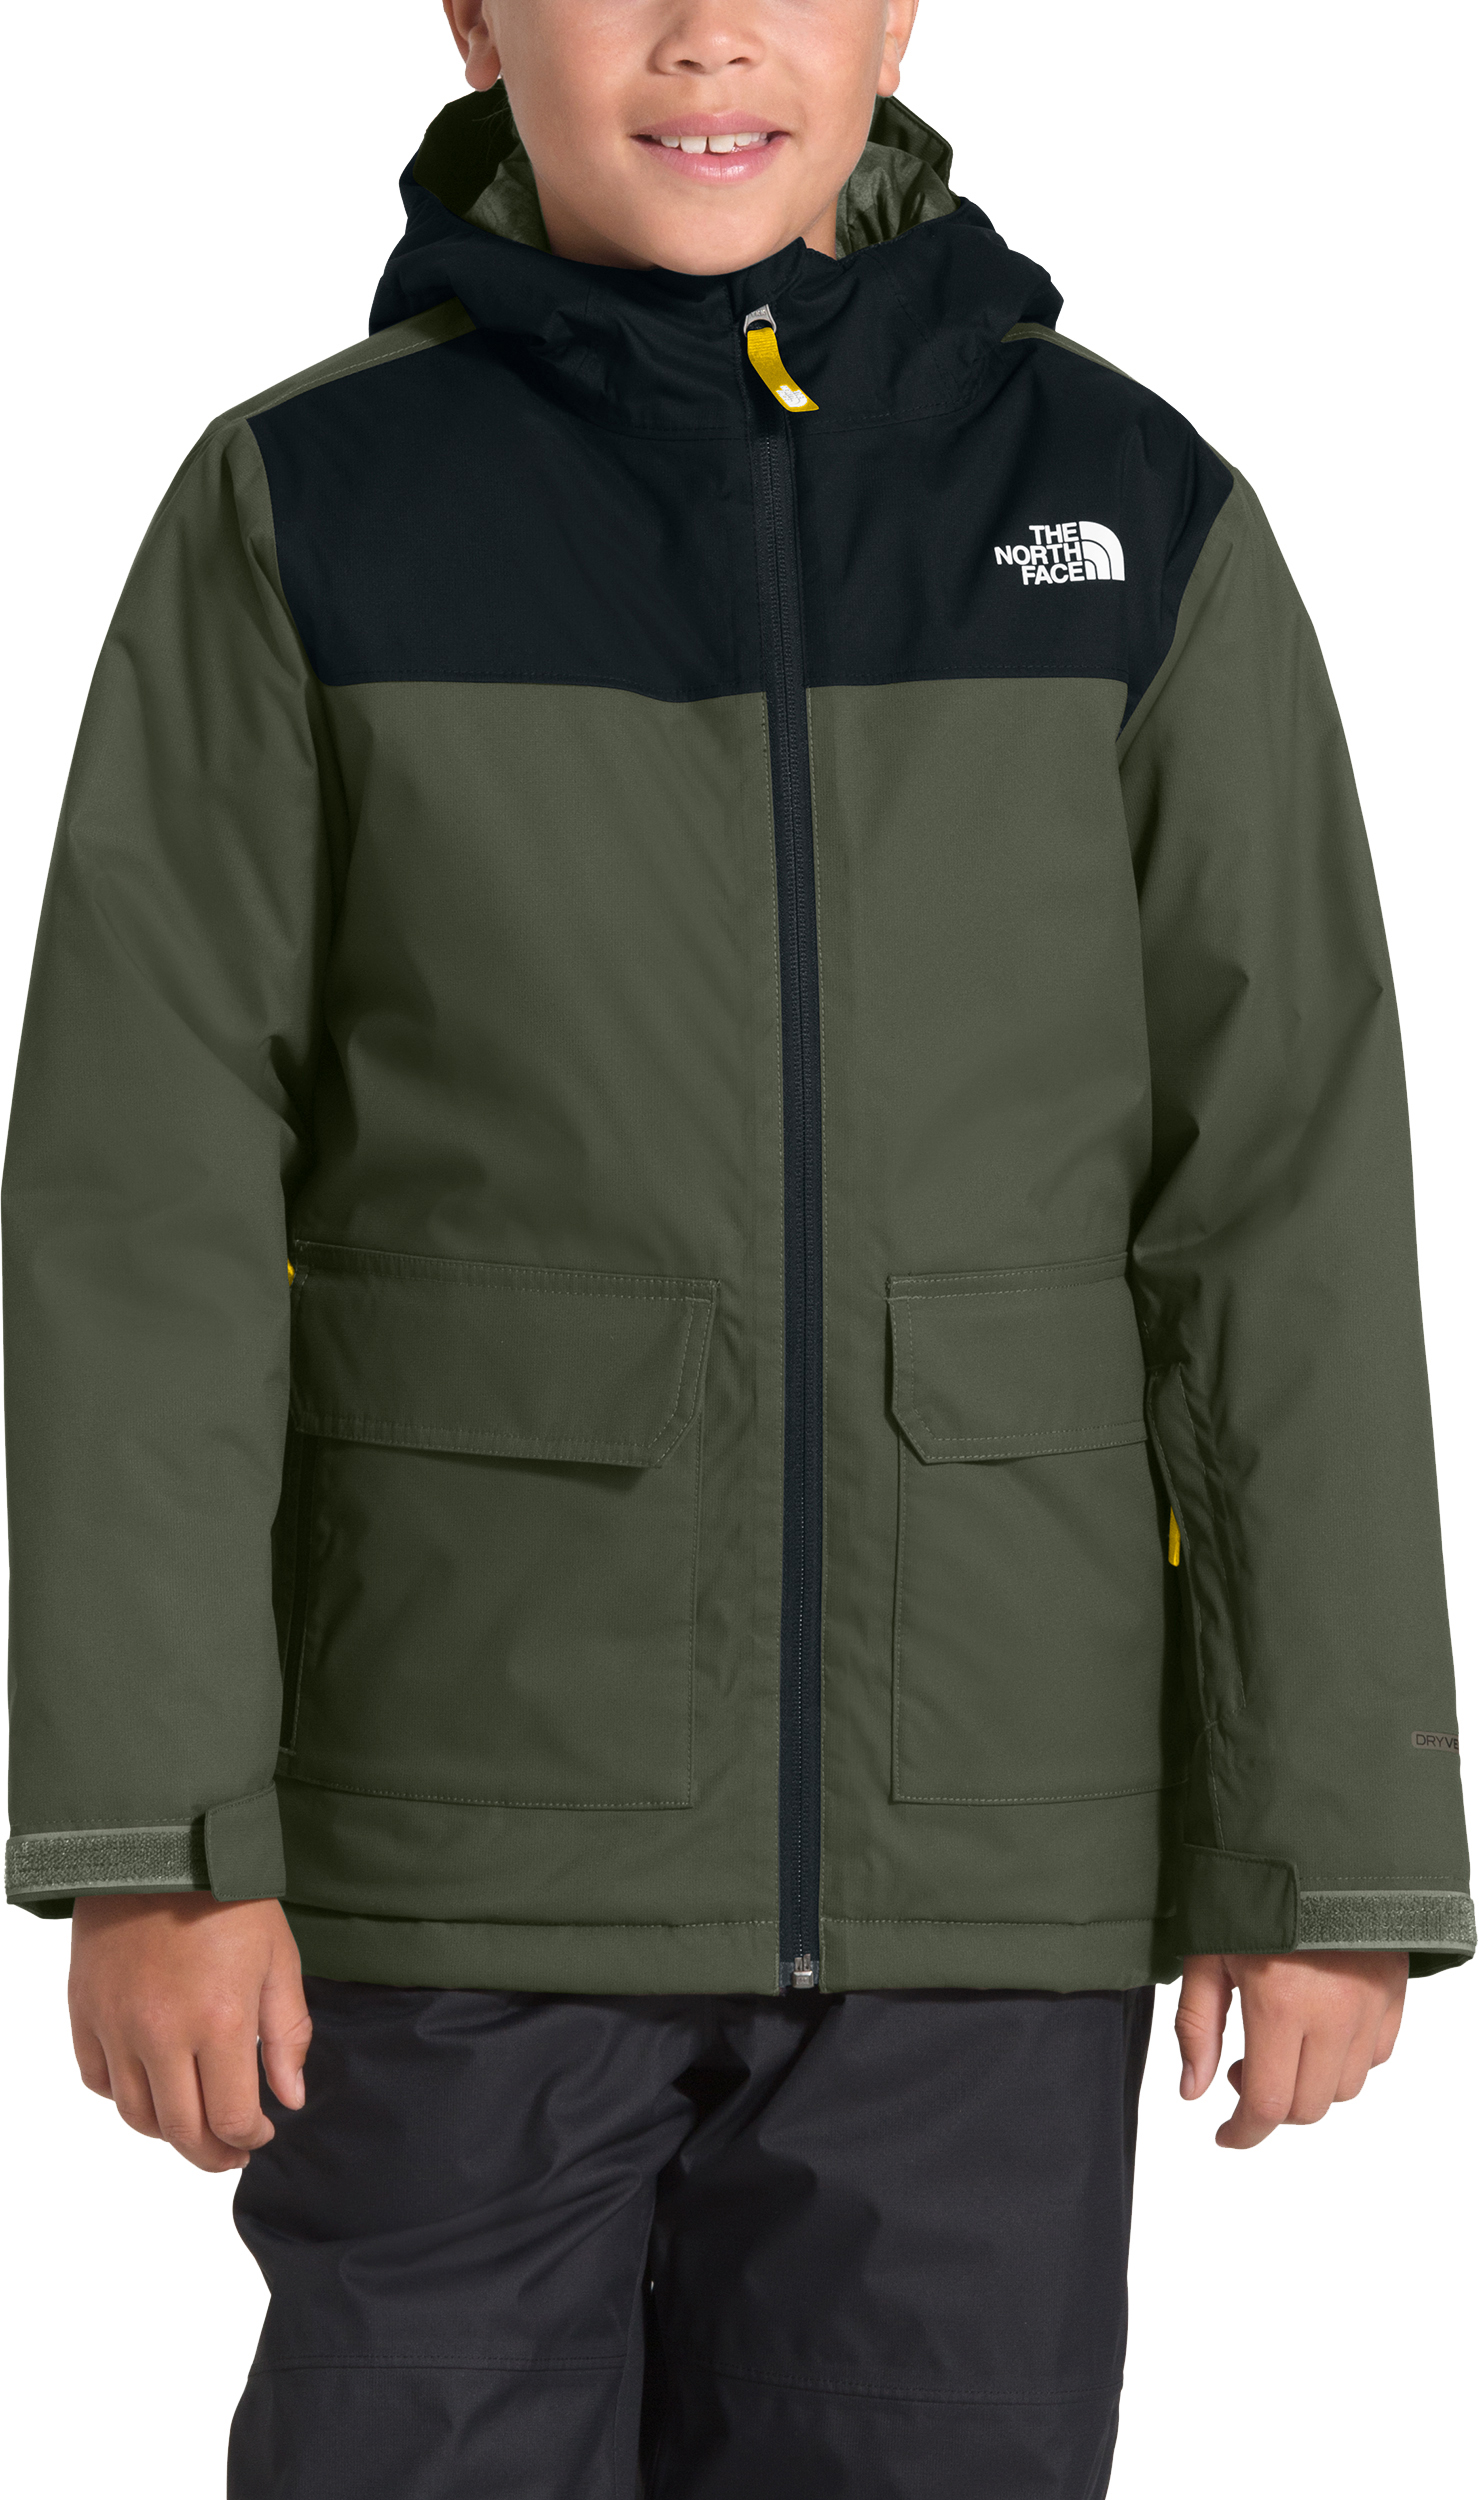 03a002386 The North Face Freedom Insulated Jacket - Boys' - Children to Youths ...